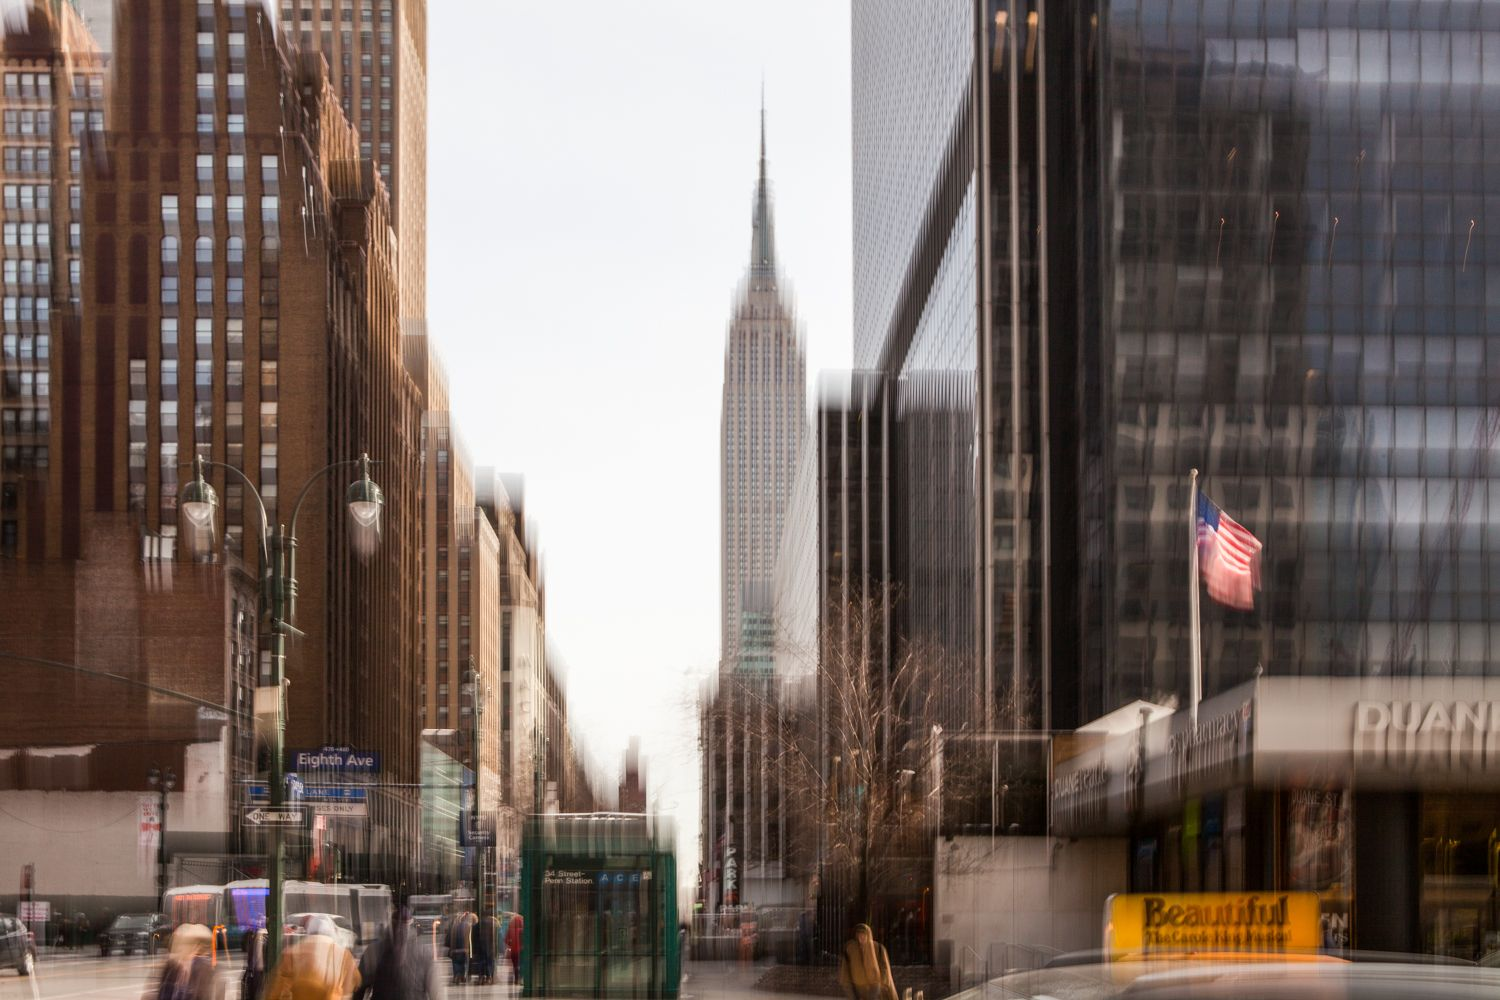 New York Dream 01,Xavier Dumoulin,Photographie